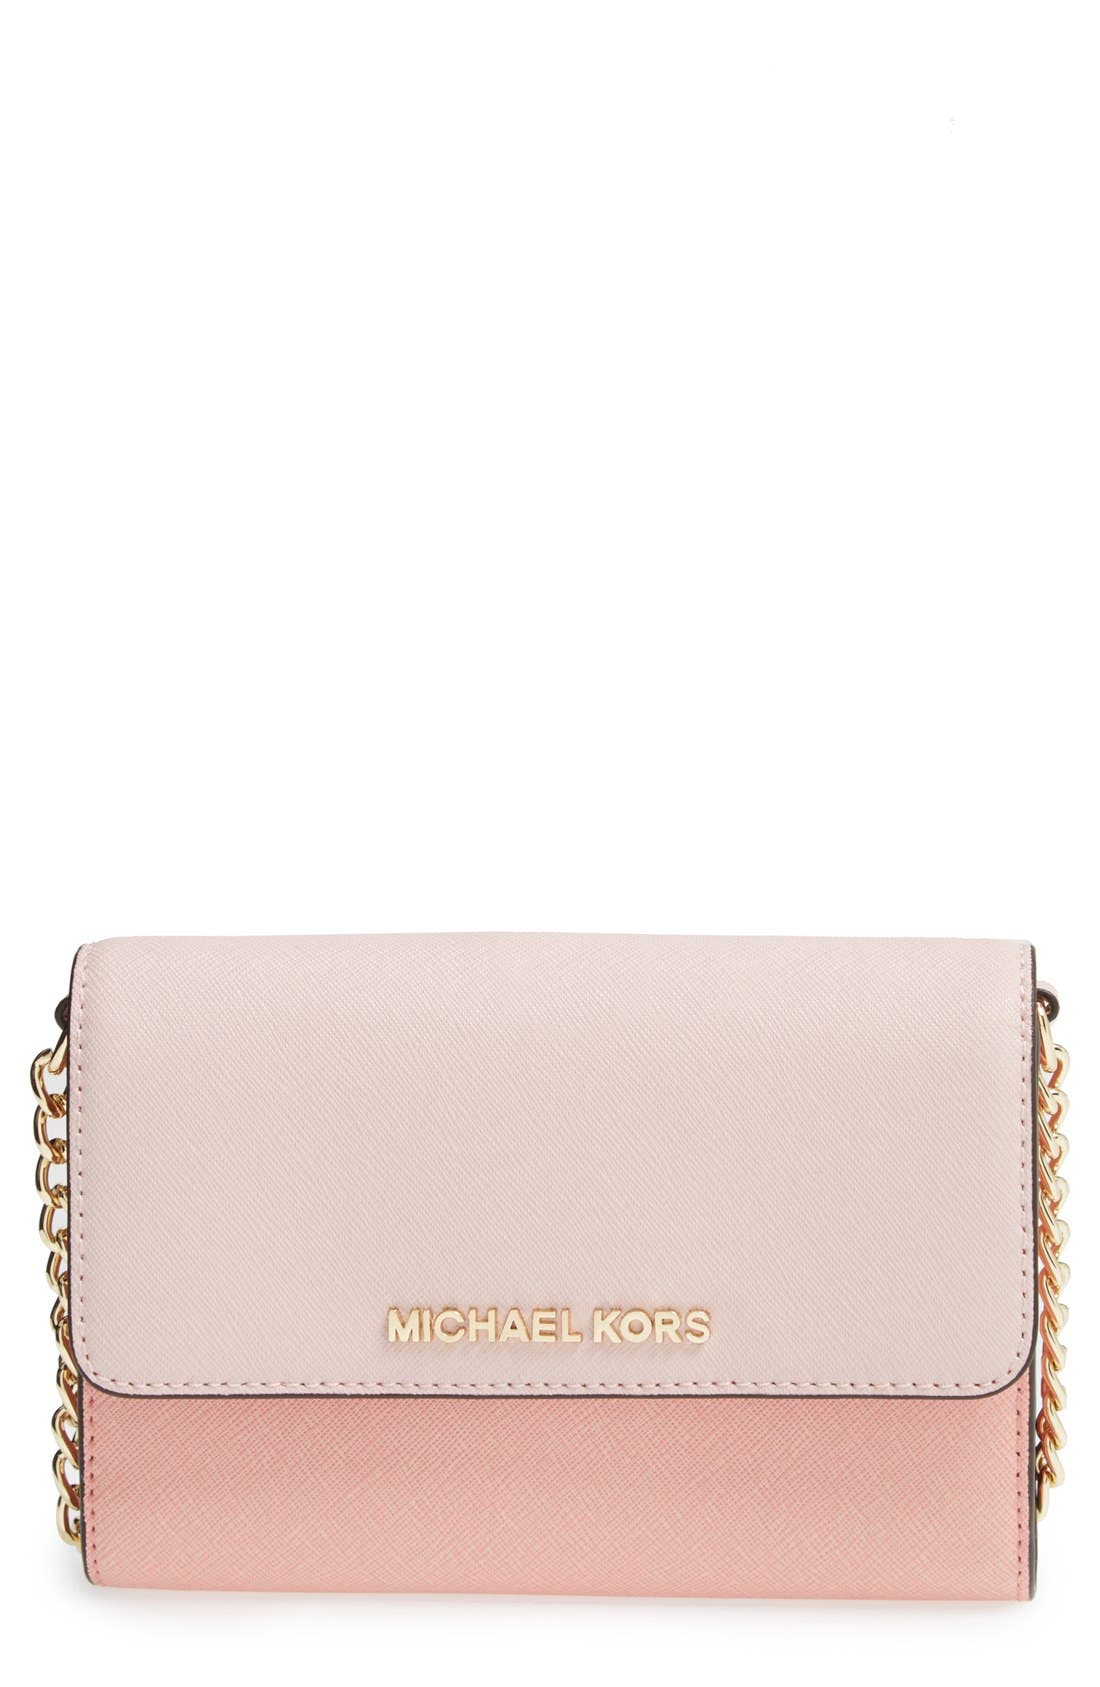 Main Image - MICHAEL Michael Kors 'Jet Set Travel' Saffiano Leather Crossbody Bag